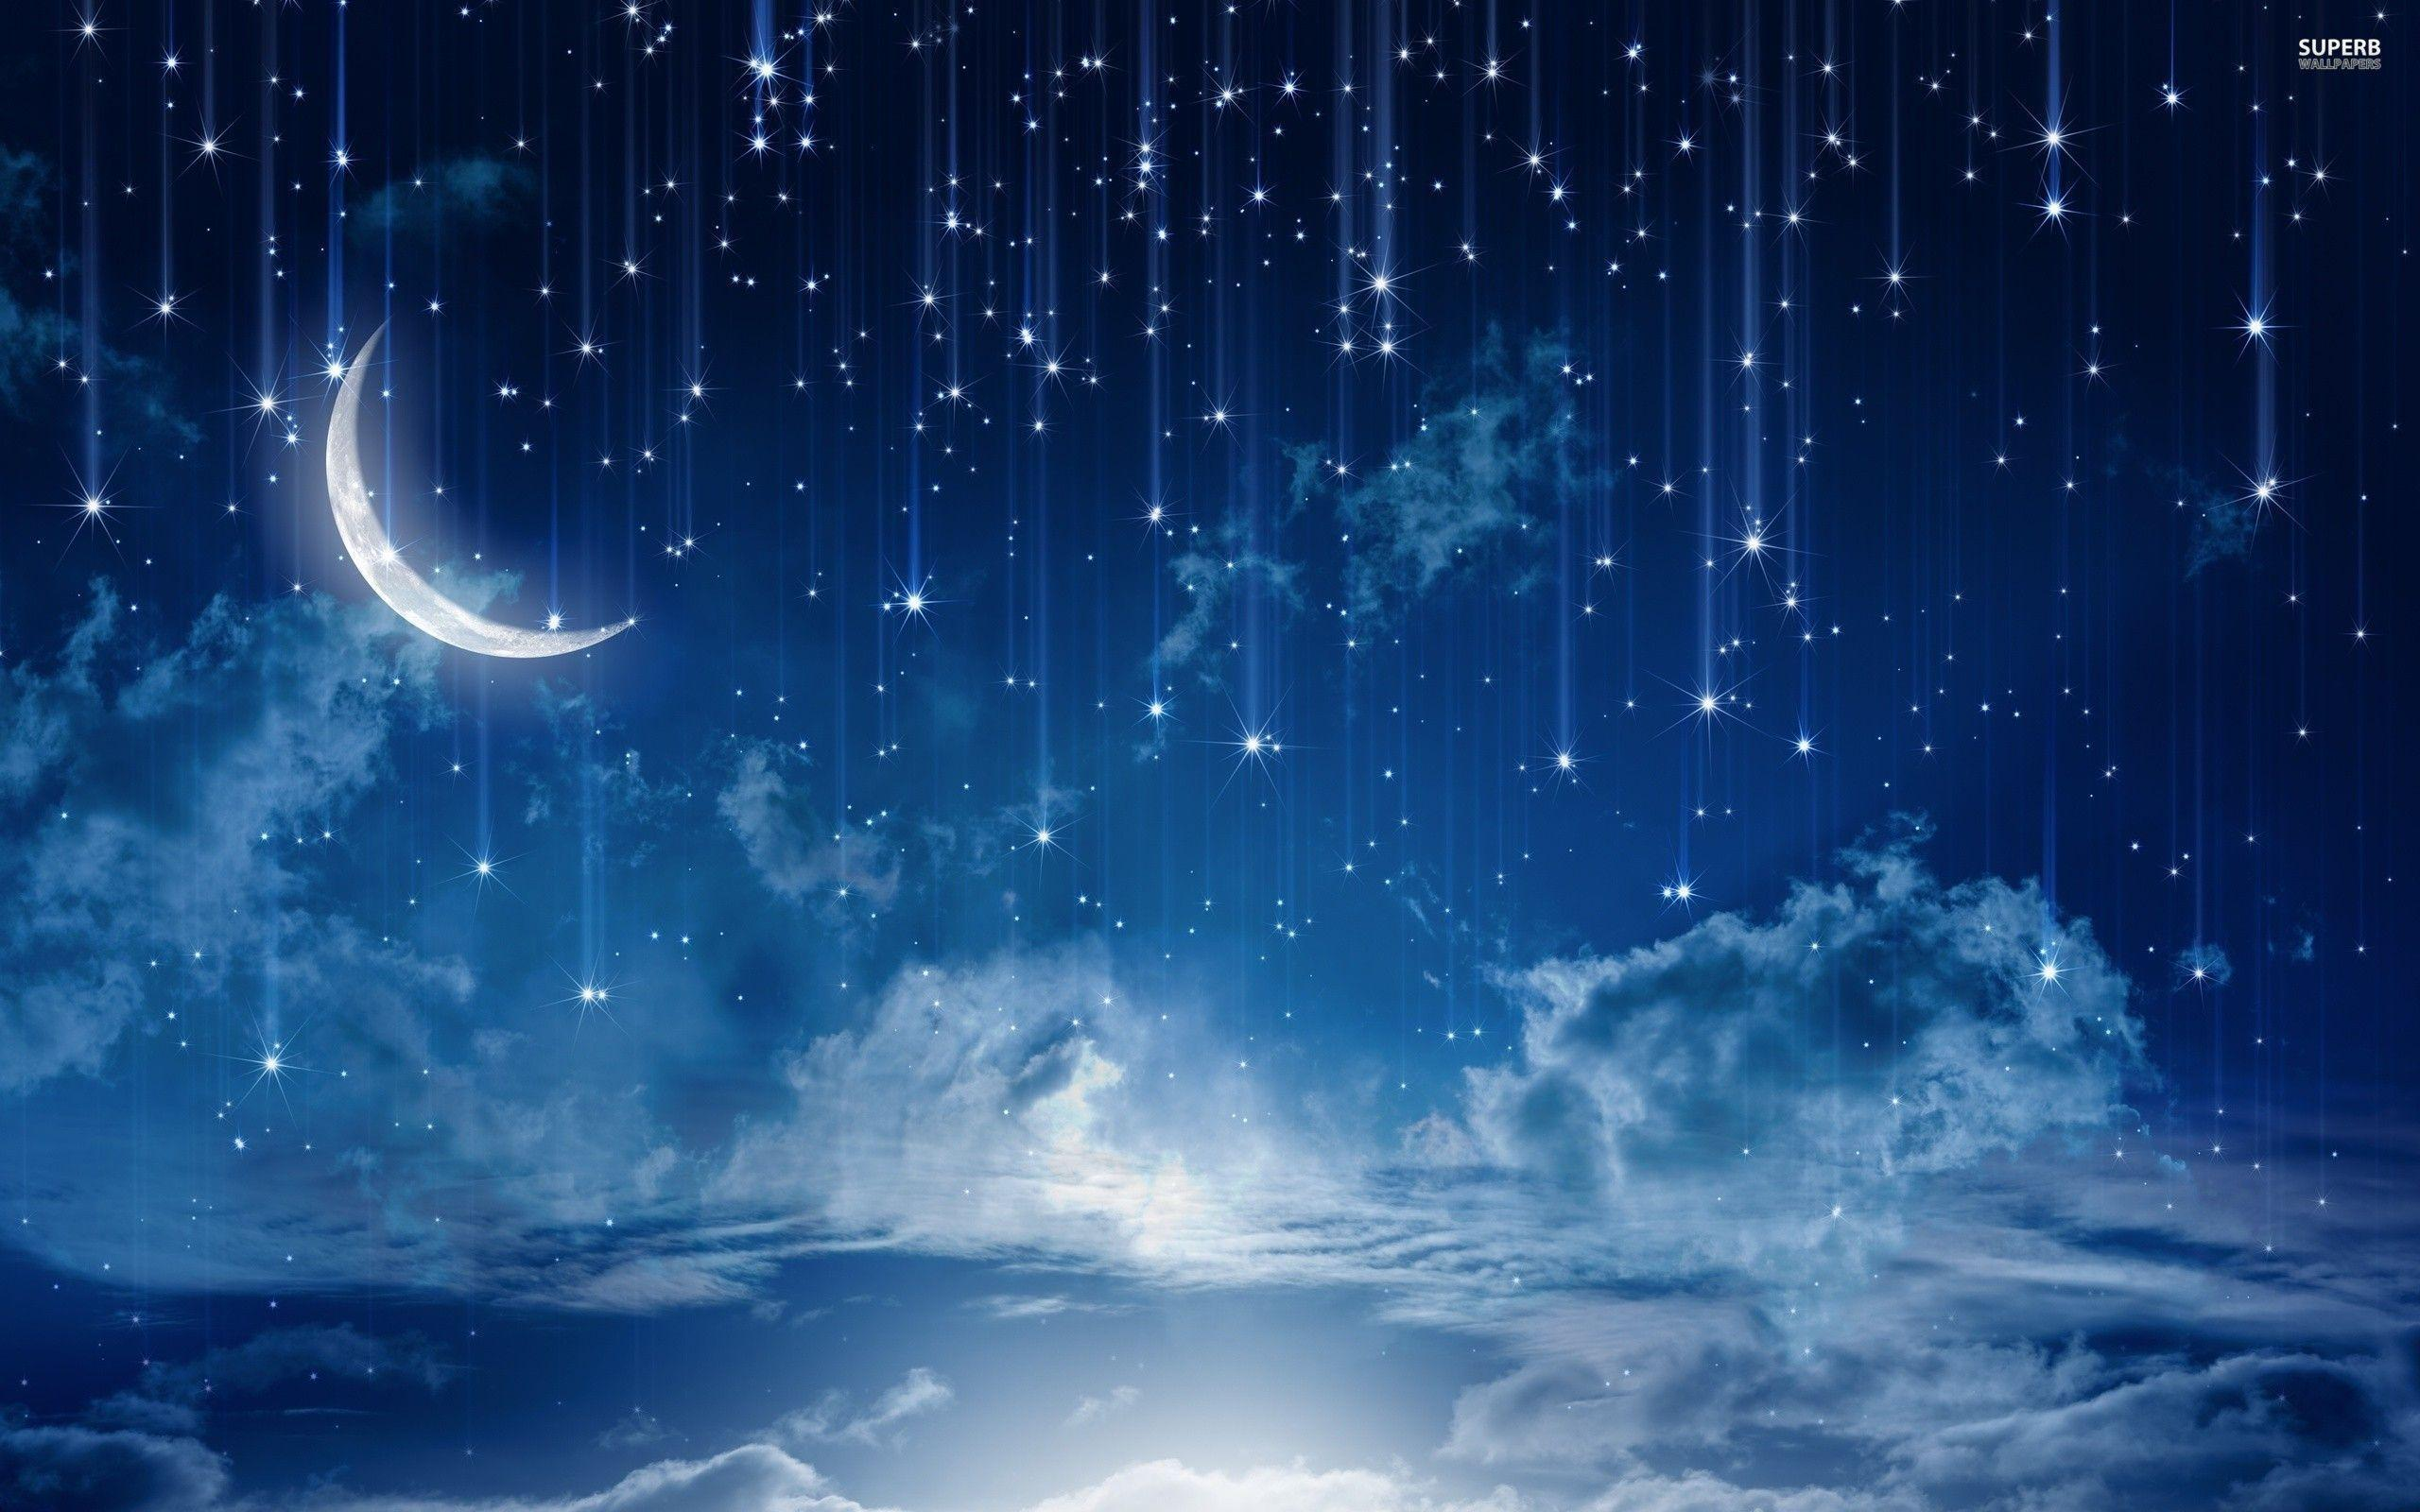 Full HD p Night Wallpapers HD Desktop Backgrounds x